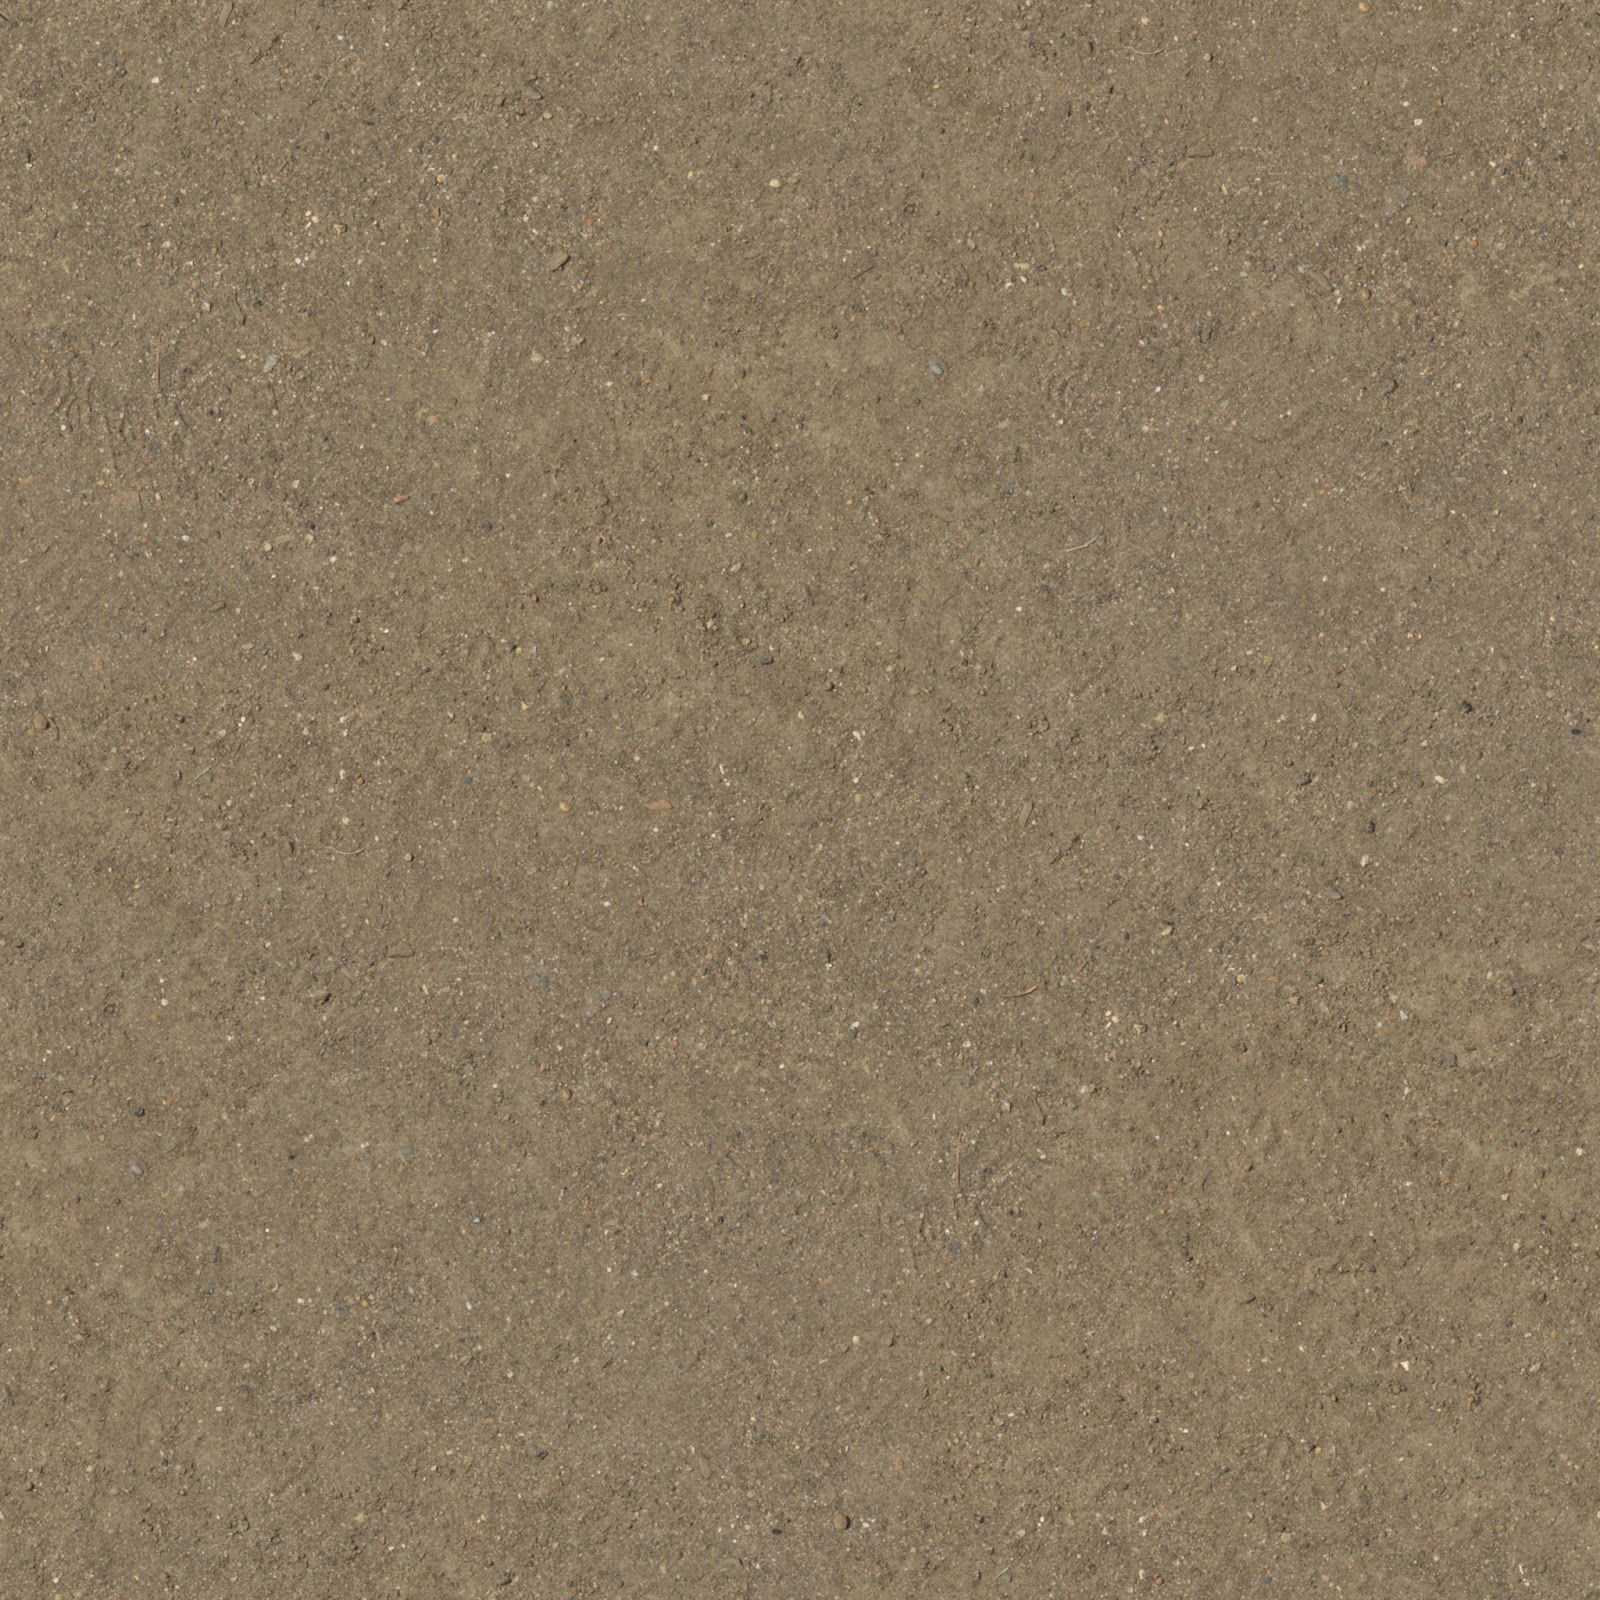 High Resolution Seamless Textures DIRT 3 soil dust dirt sand